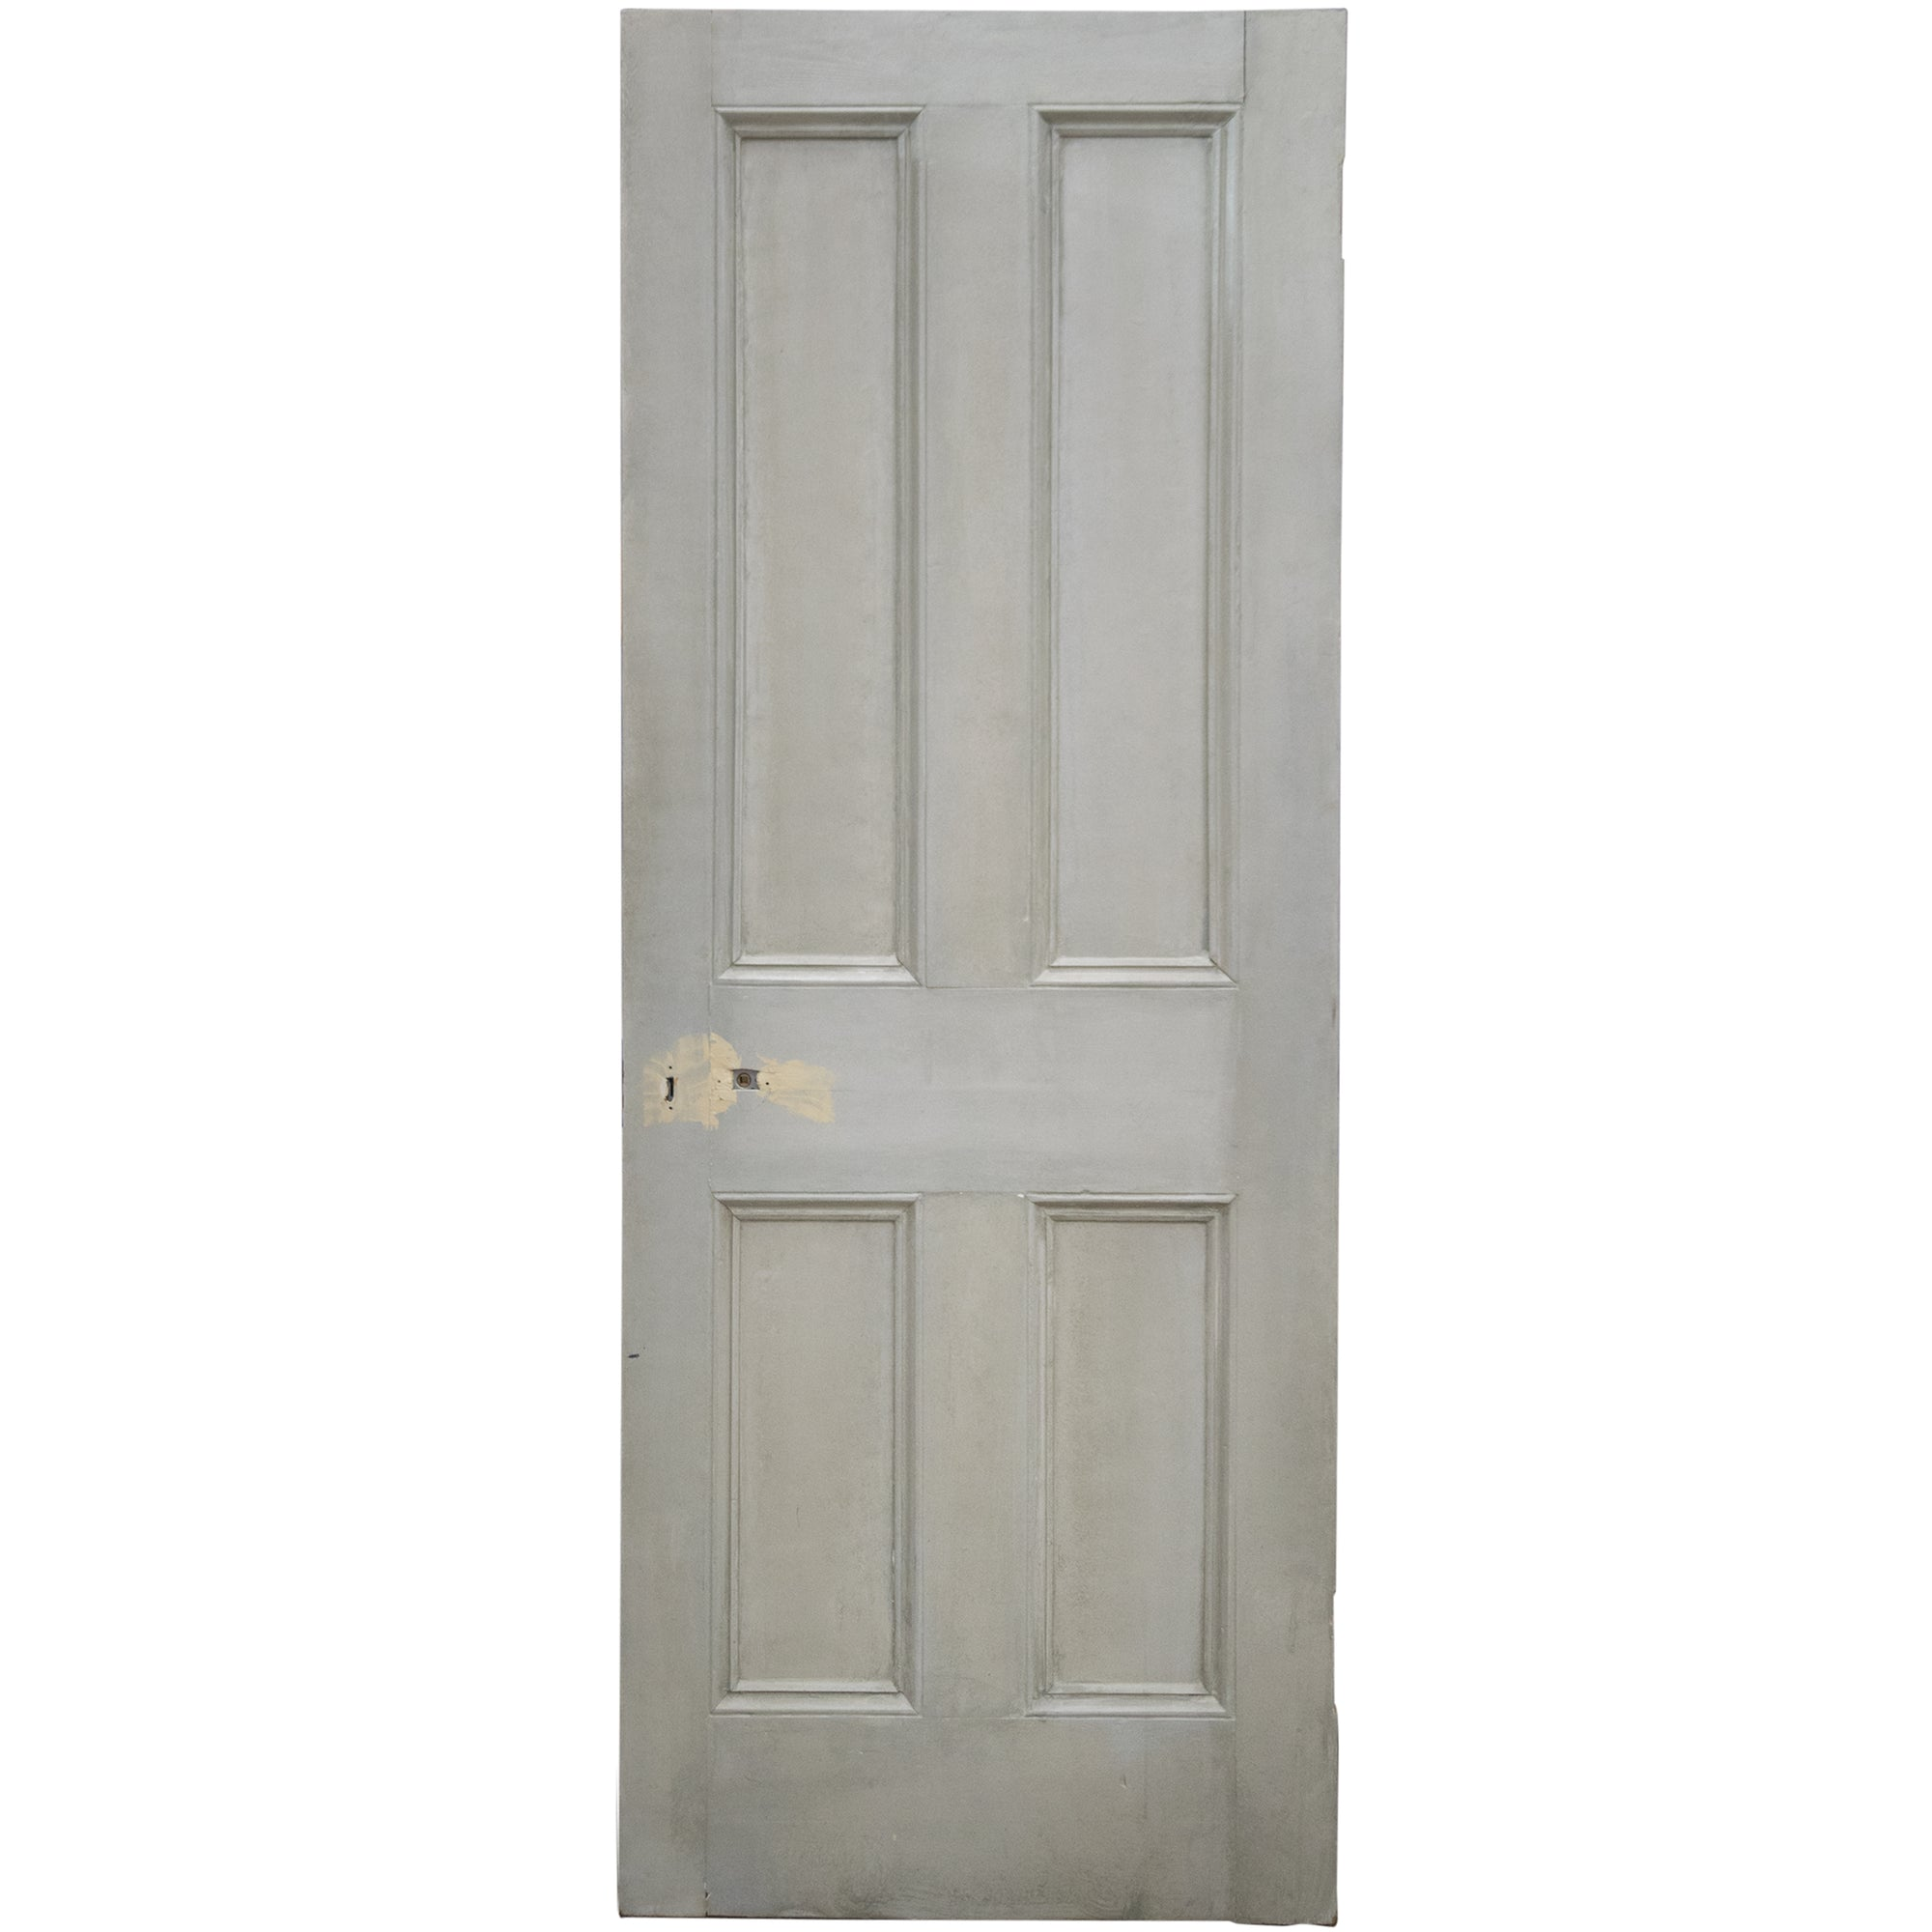 Reclaimed Victorian 4 Panel Door - 194.5cm x 75.5cm